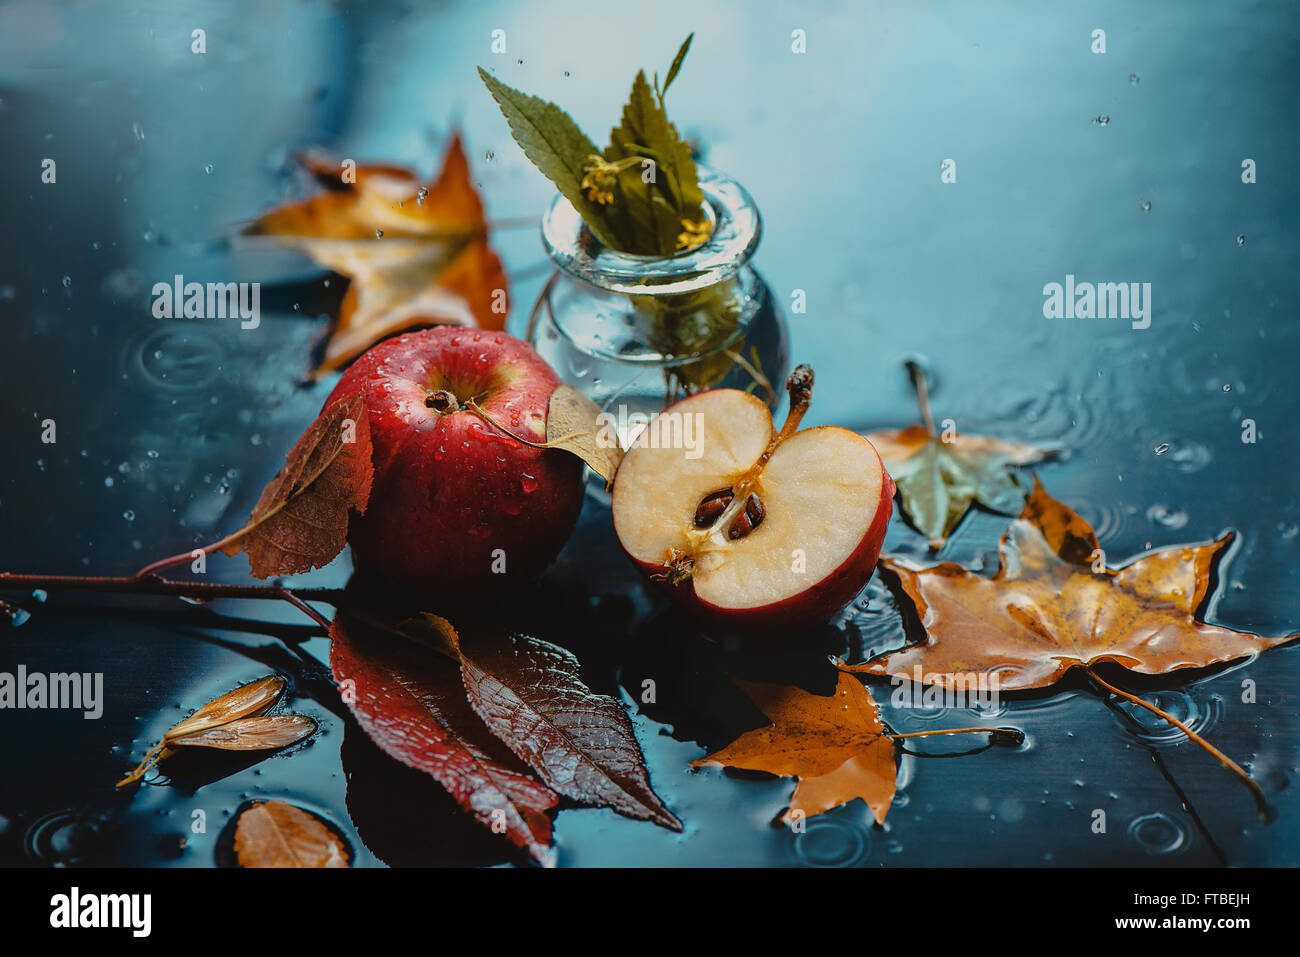 Autumn rain and apples - Stock Image